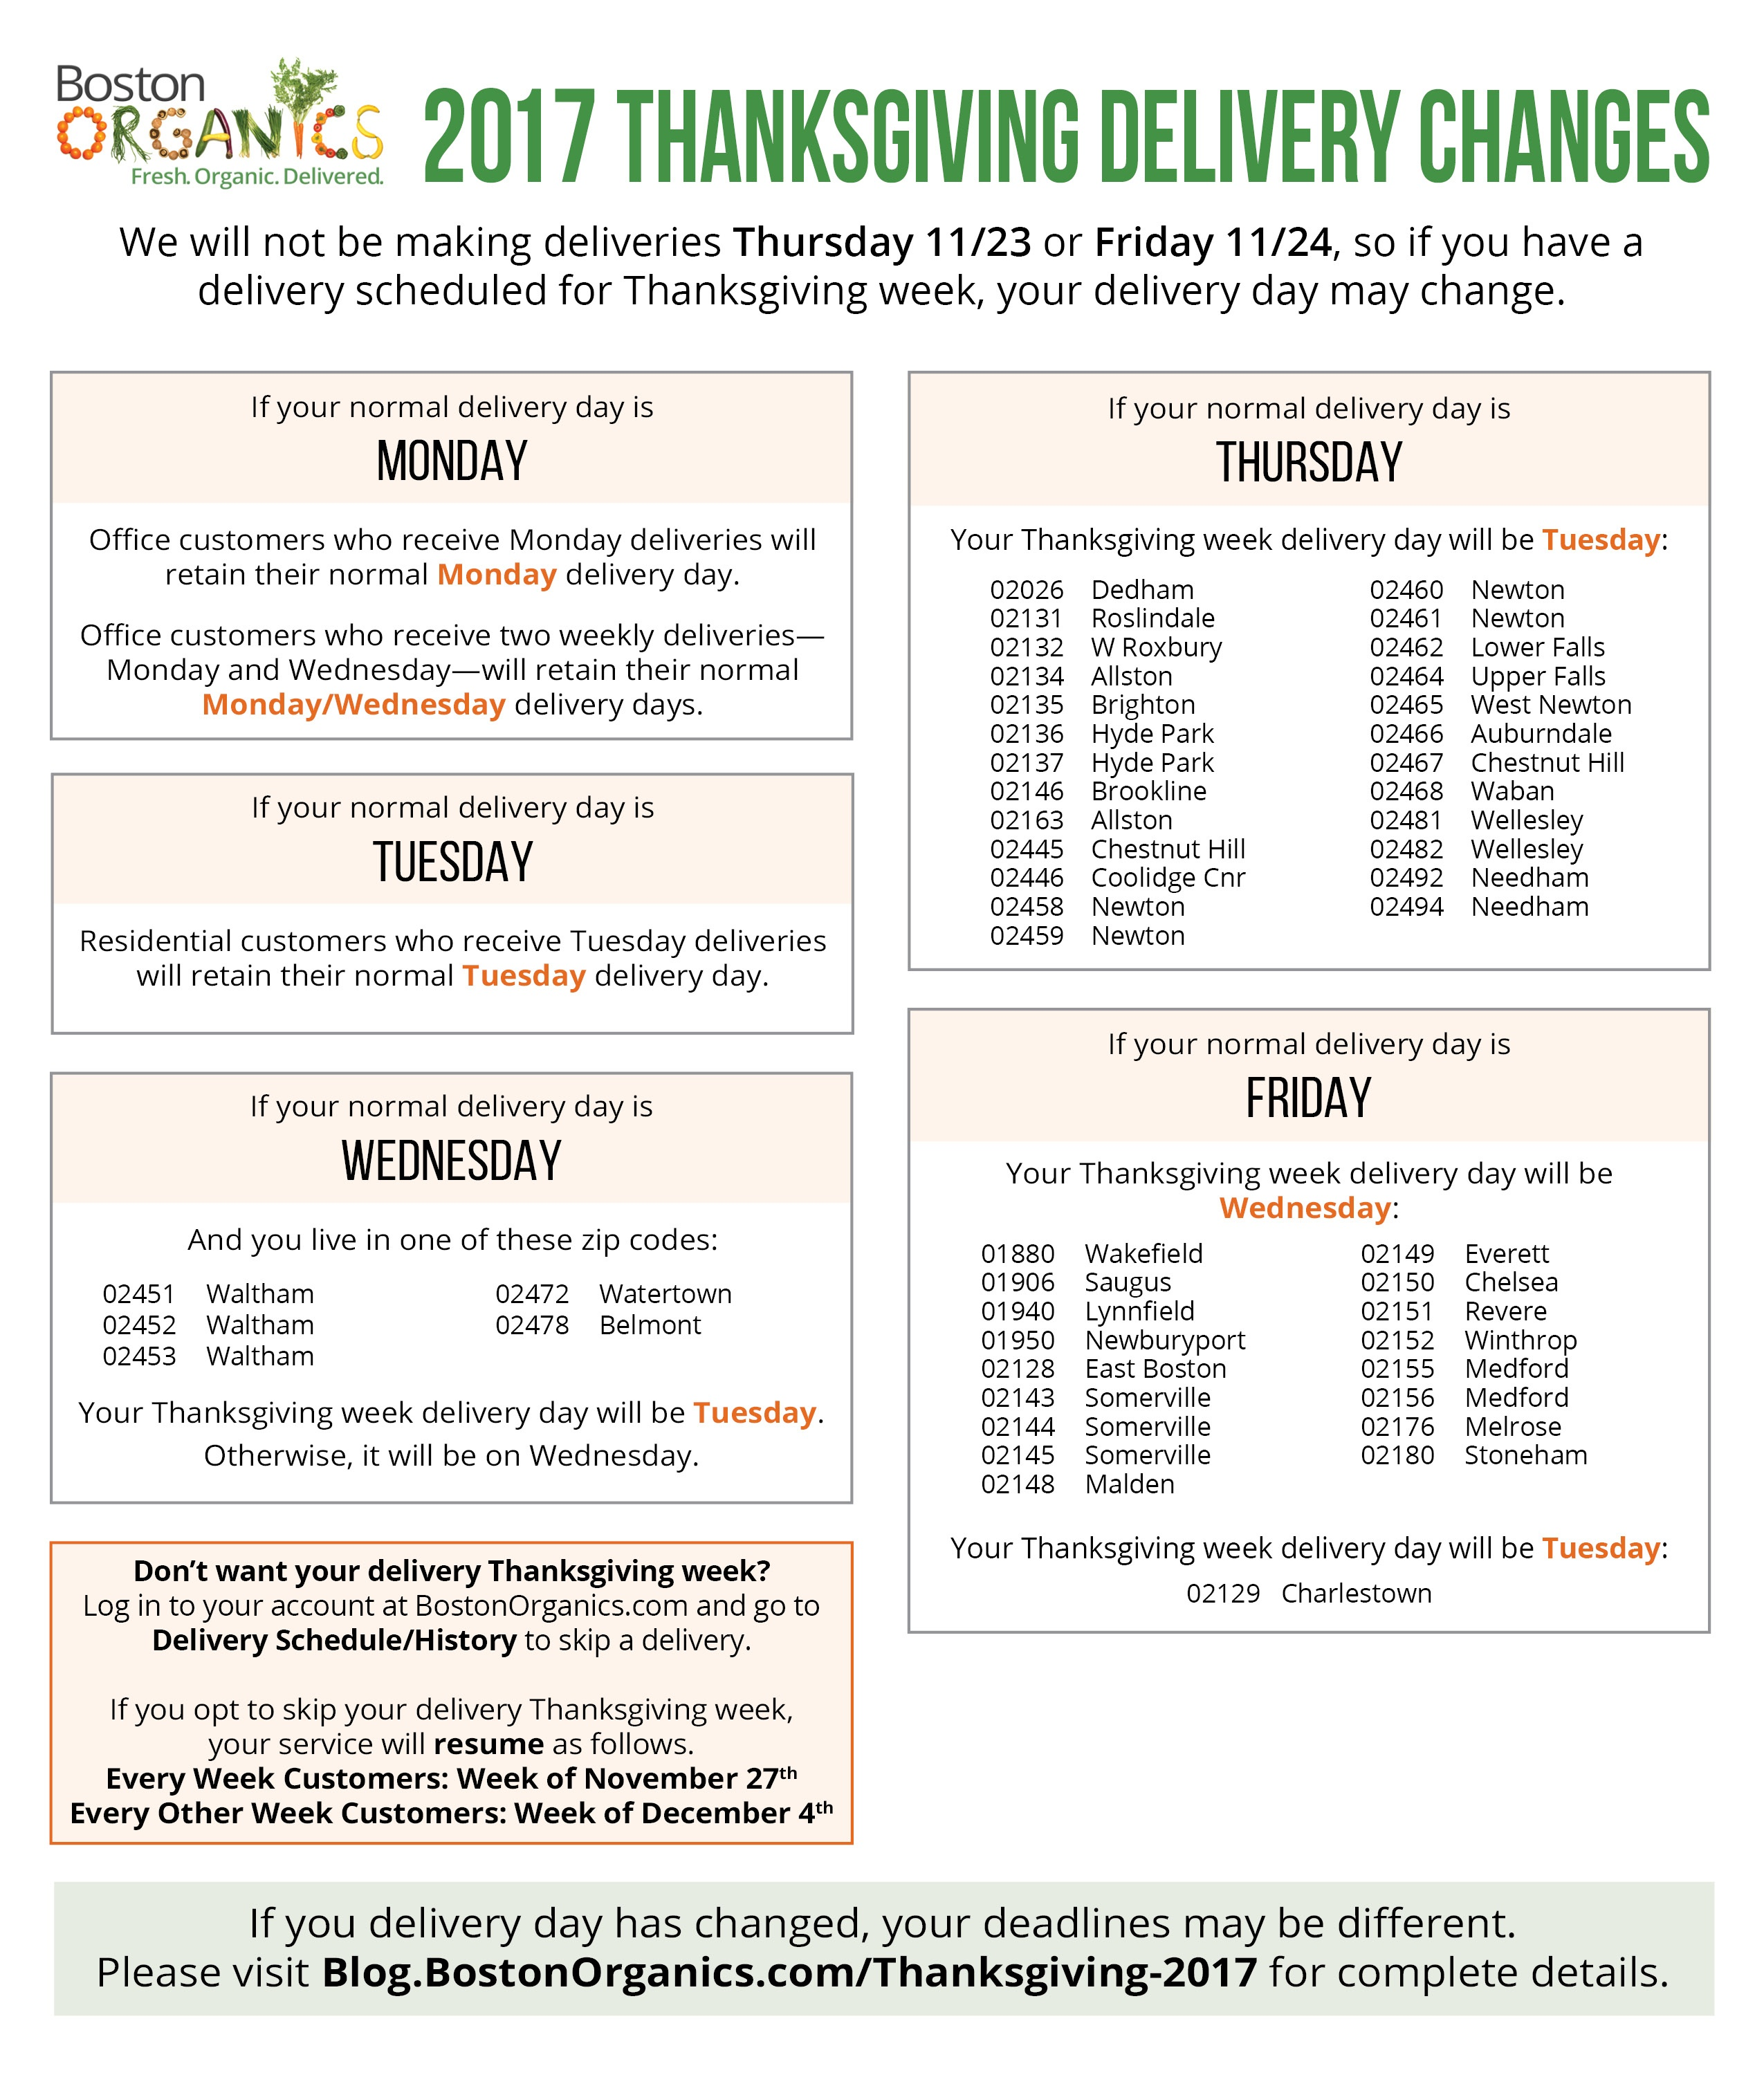 Thanksgiving 2017 Schedule Delivery Changes